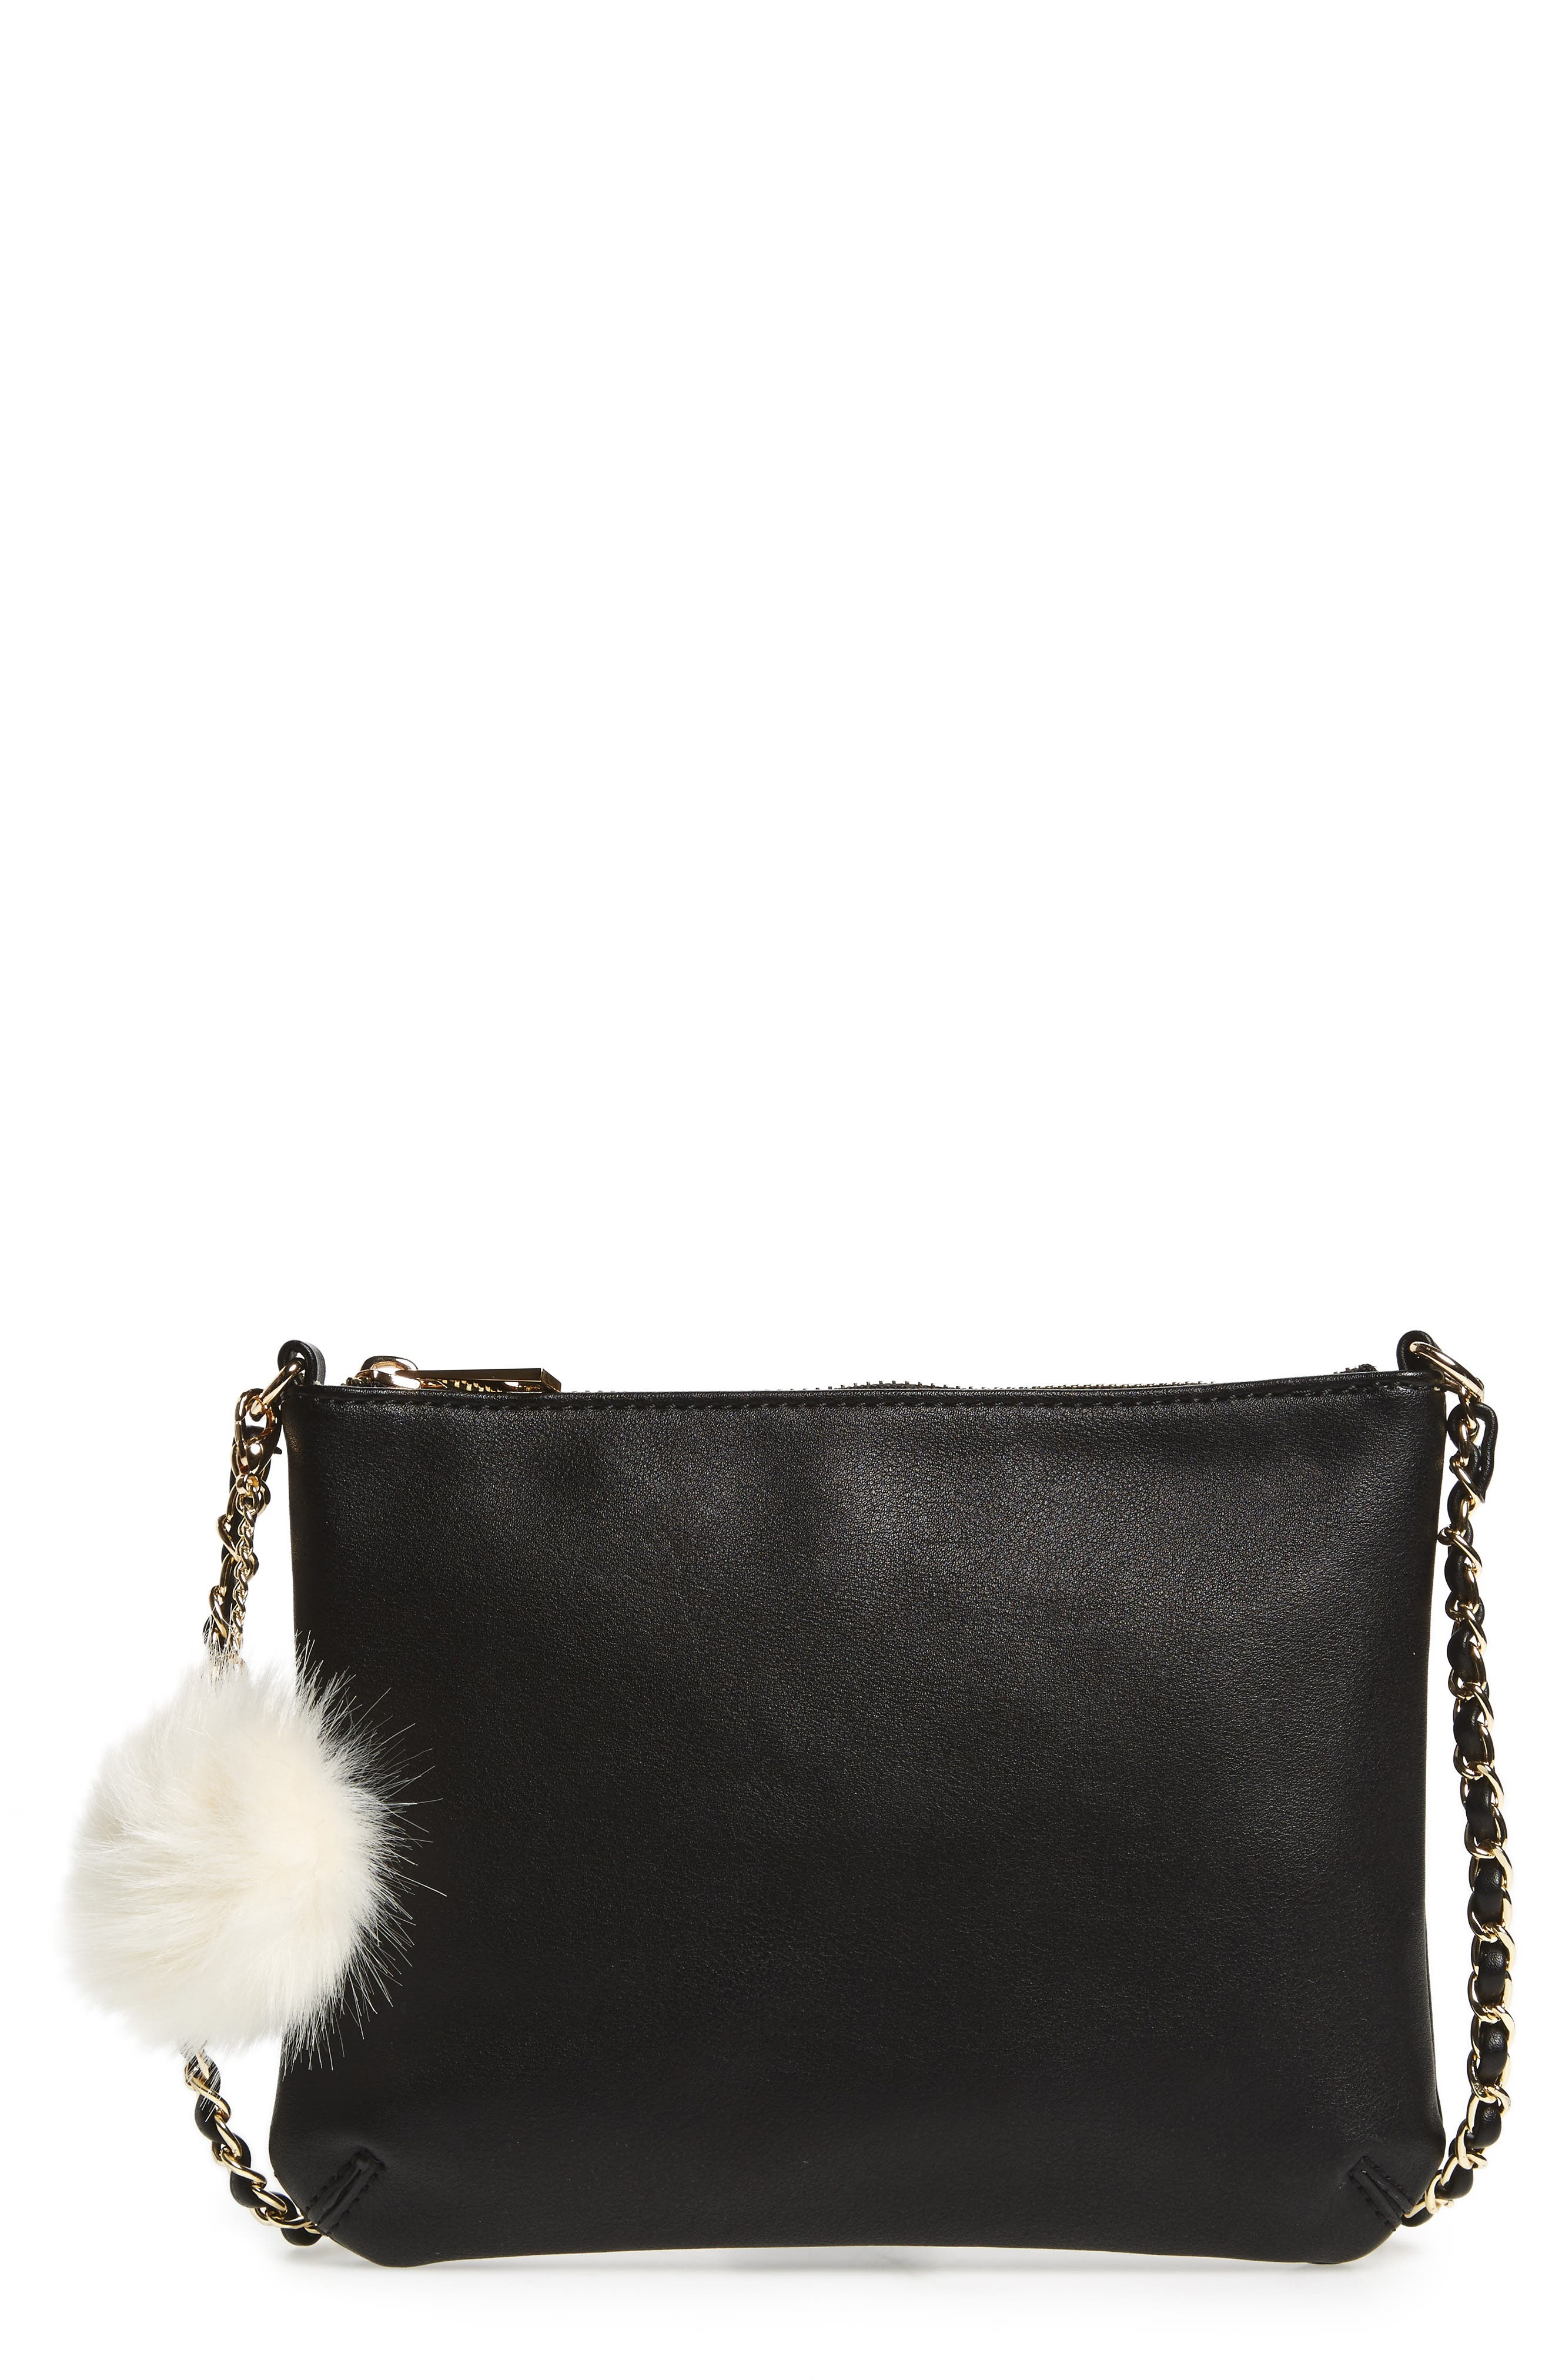 Alternate Image 1 Selected - Emperia Faux Leather Crossbody Bag with Faux Fur Pom